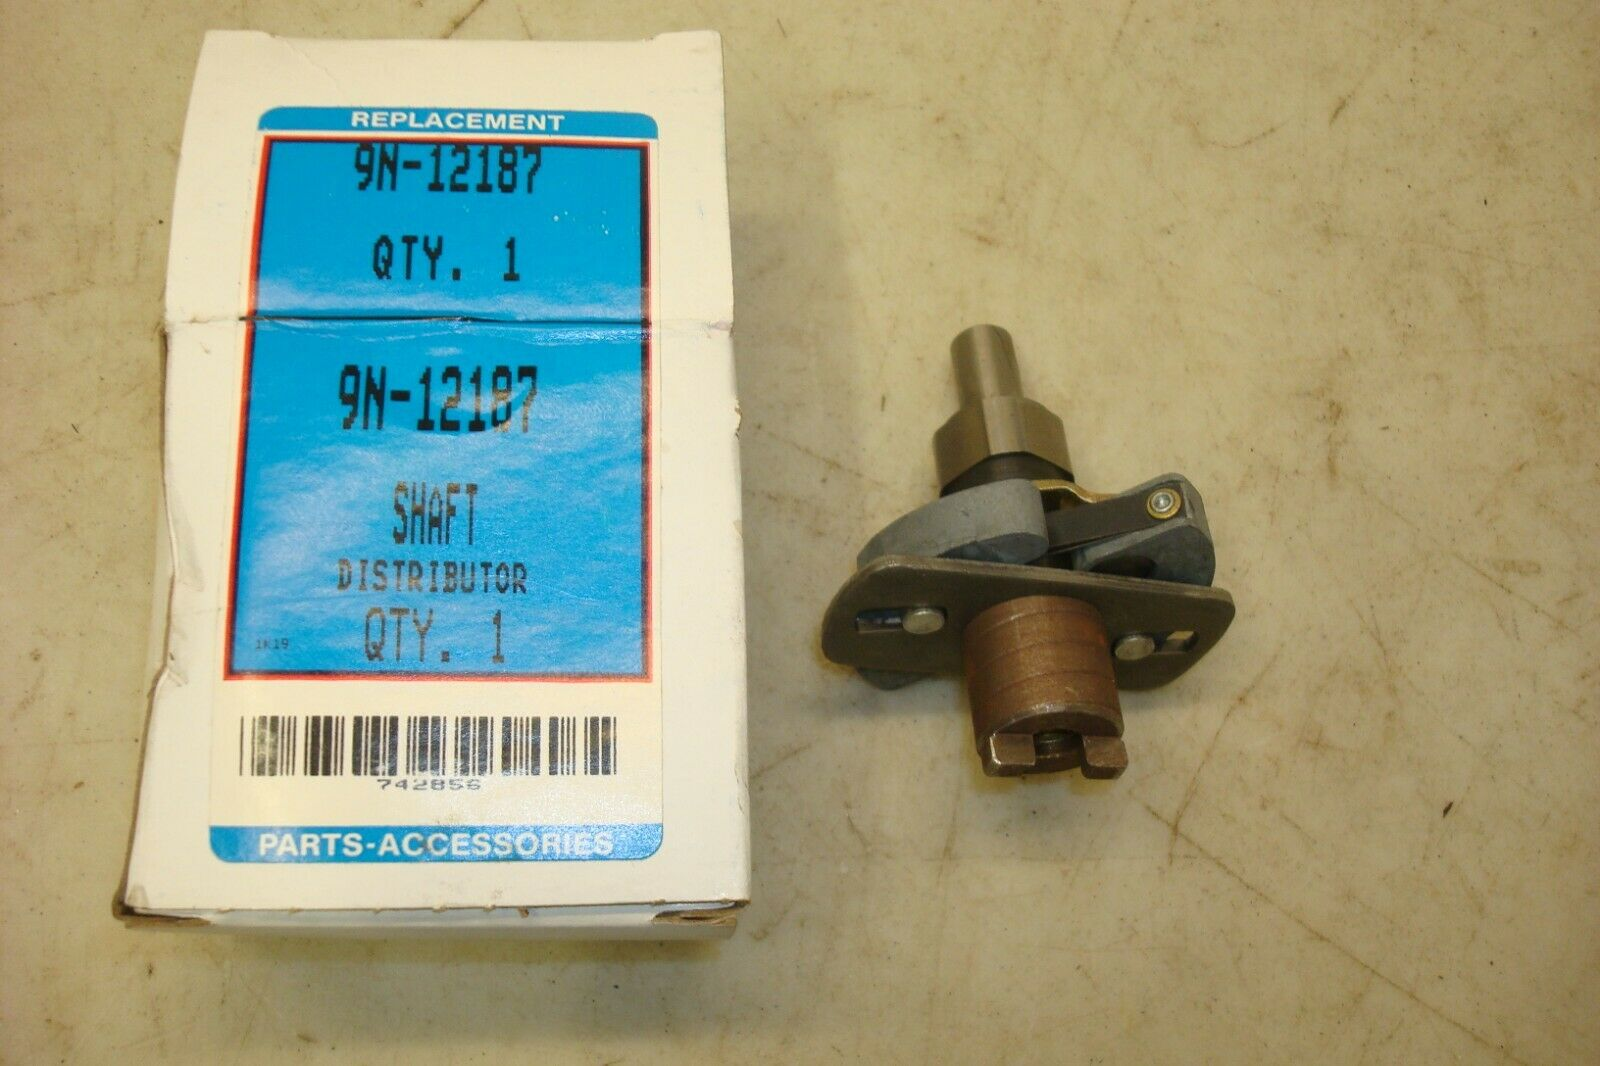 9N12187 Distributor Shaft /& Cam Weight Assembly for Ford Tractor 2N 8N 9N